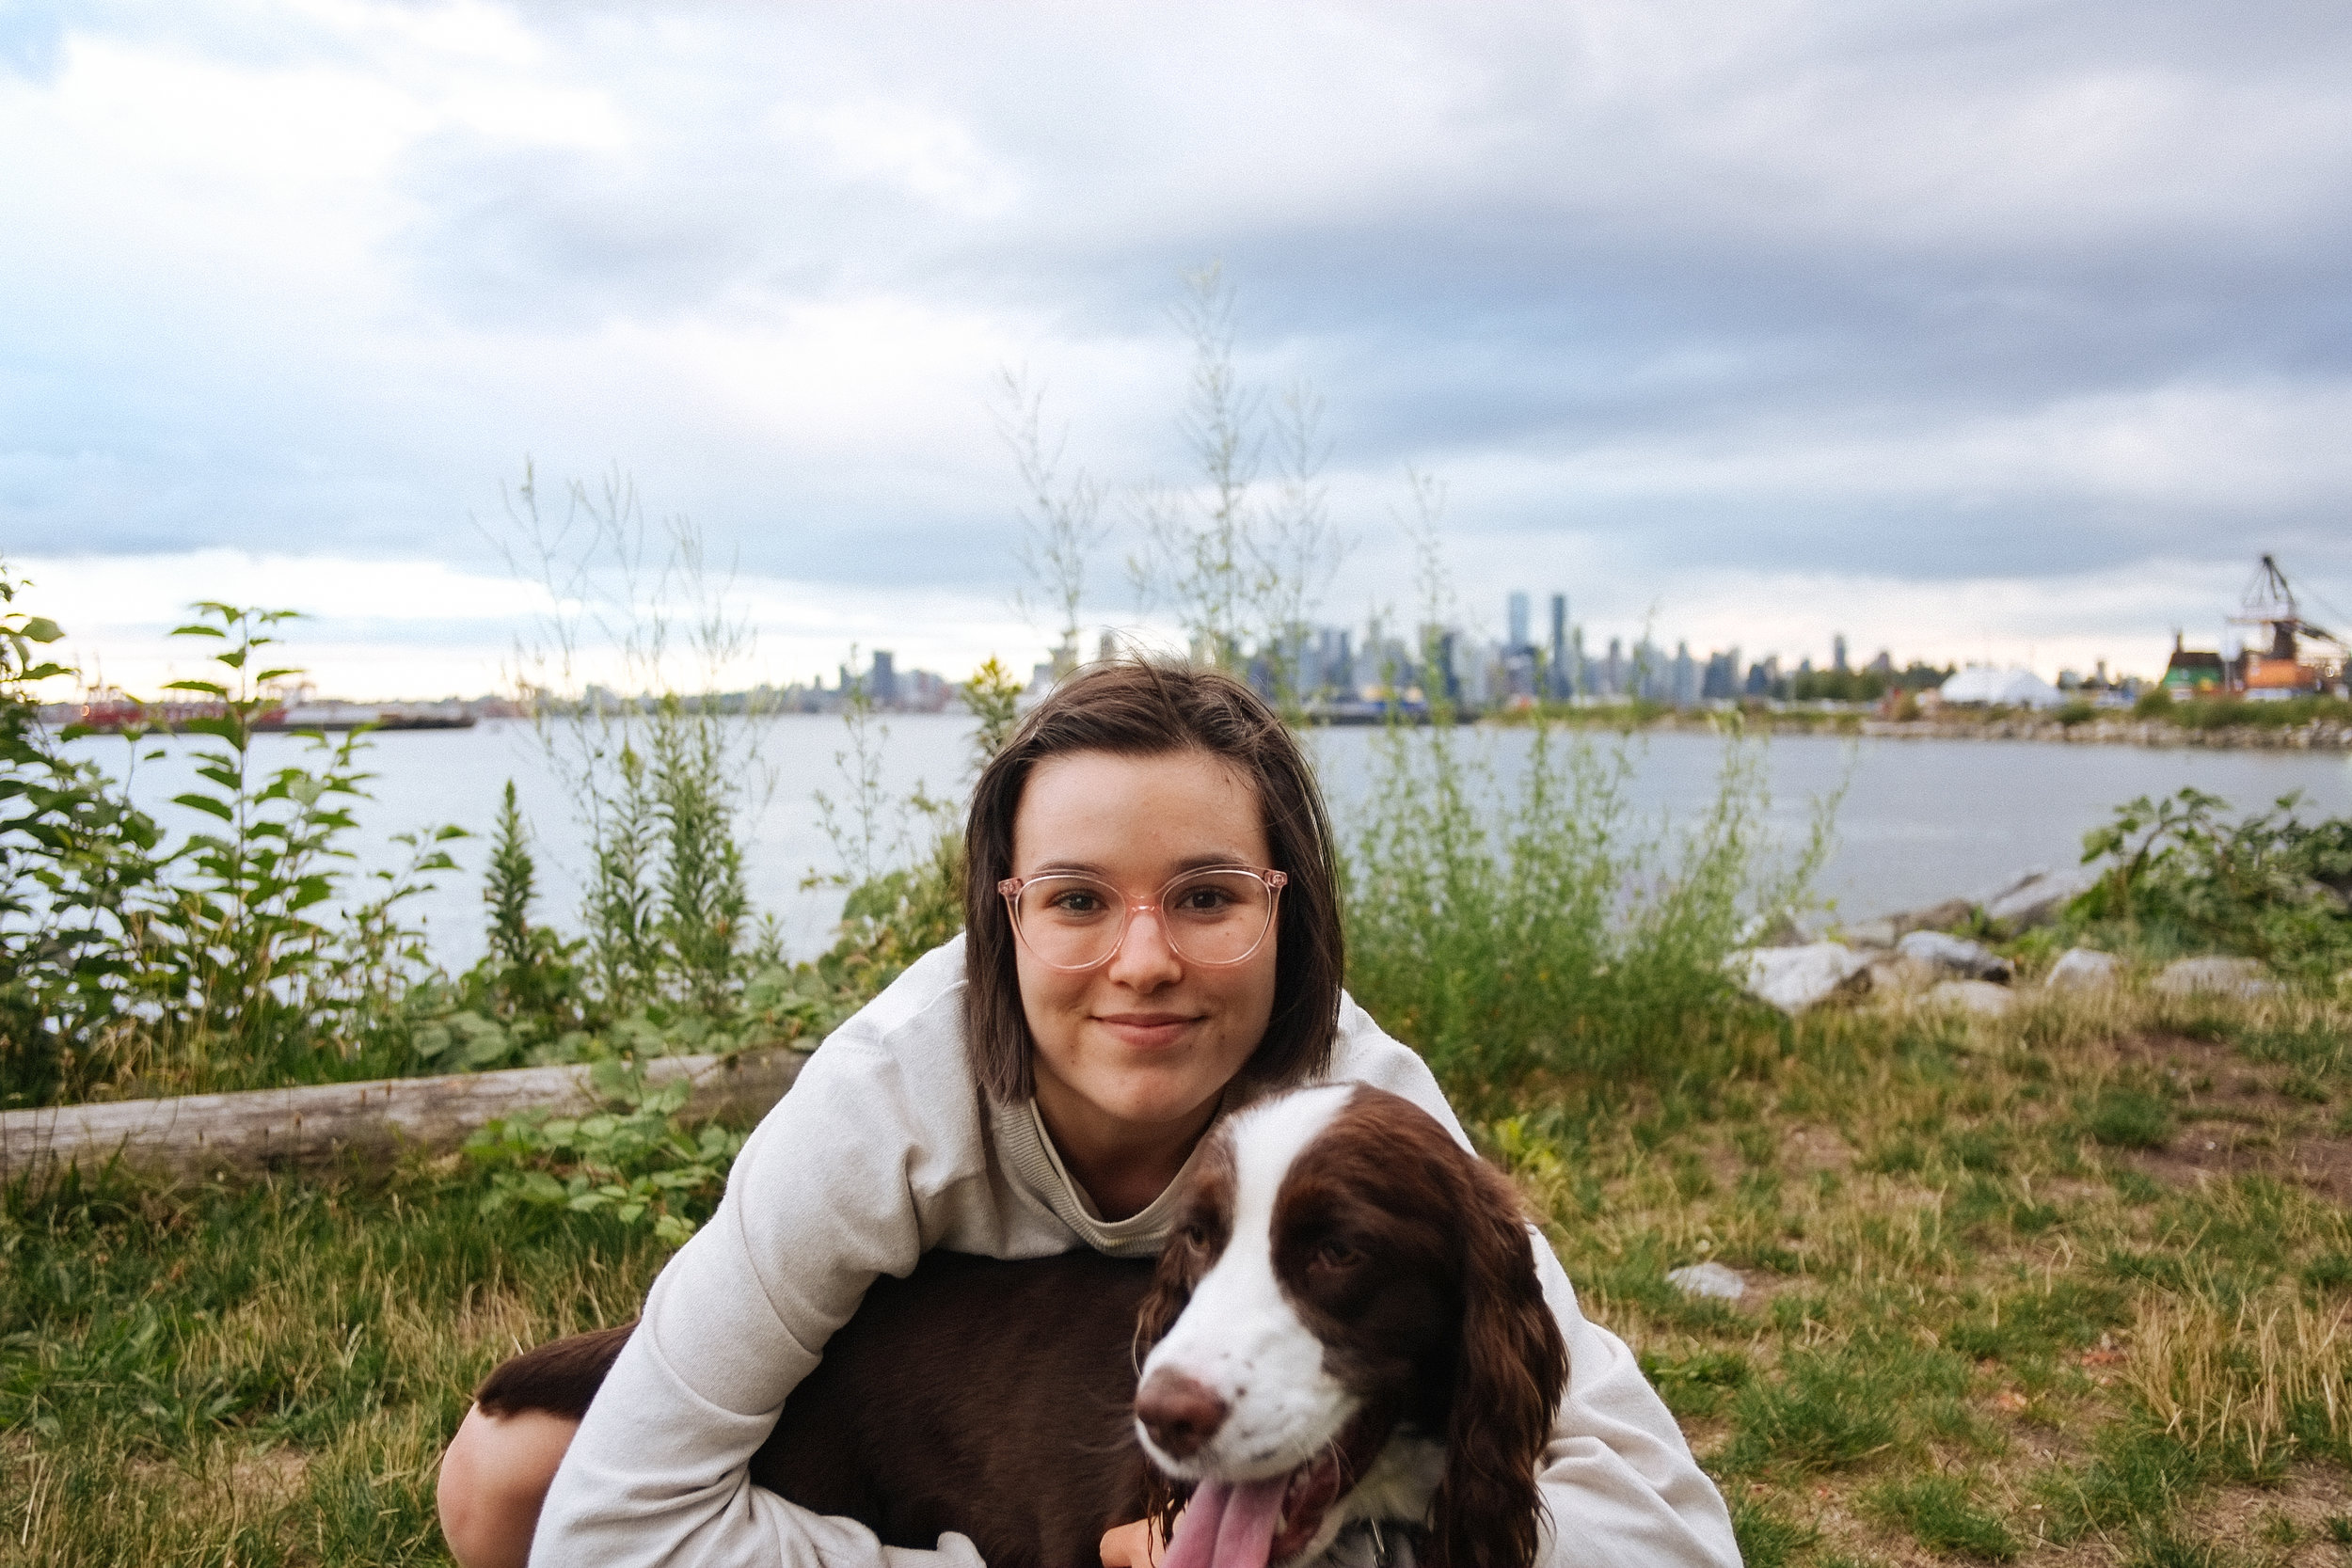 Kings Mill Park, North Vancouver - 2018-07-01: We came on Canada Day to this secret little dog park on the North Shore of Vancouver. We left because of the rain… I know kind of wimpy - but we stayed dry and still had about an hour of Brassneck Sours and dog cuddles.